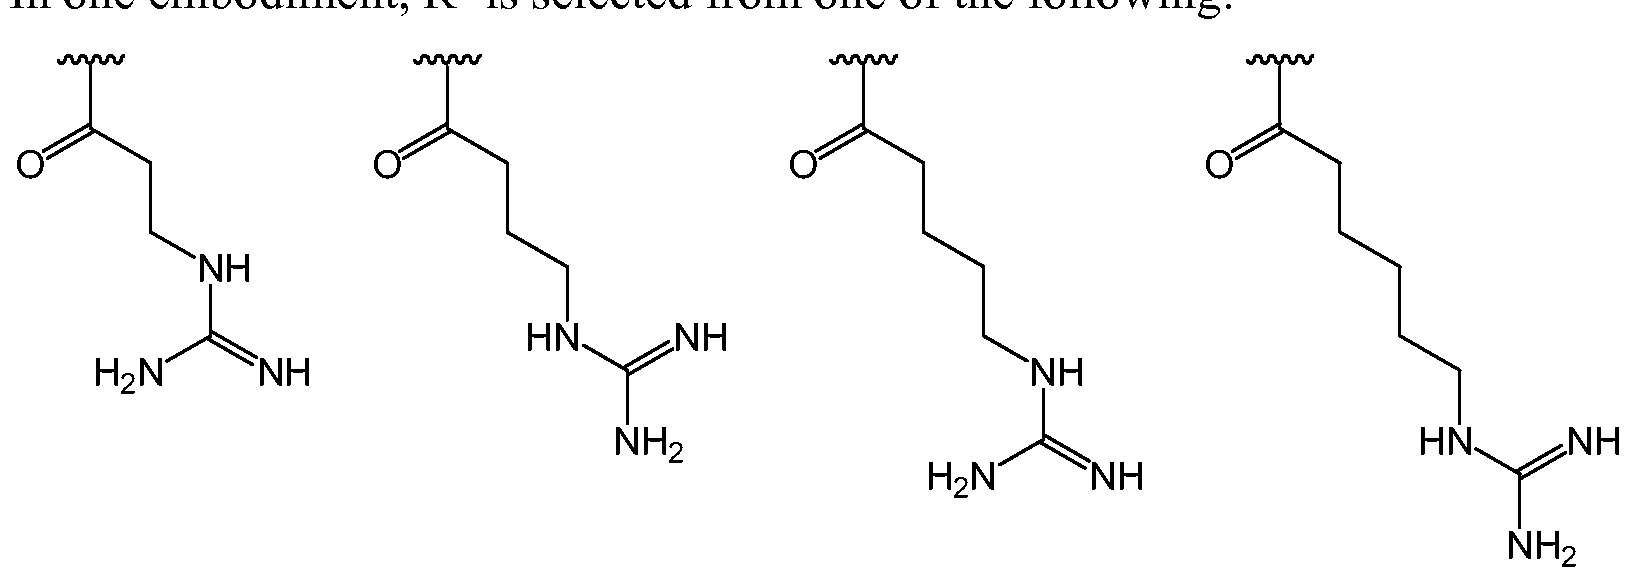 Sumamed (suspension): description of the composition and properties of the drug 28